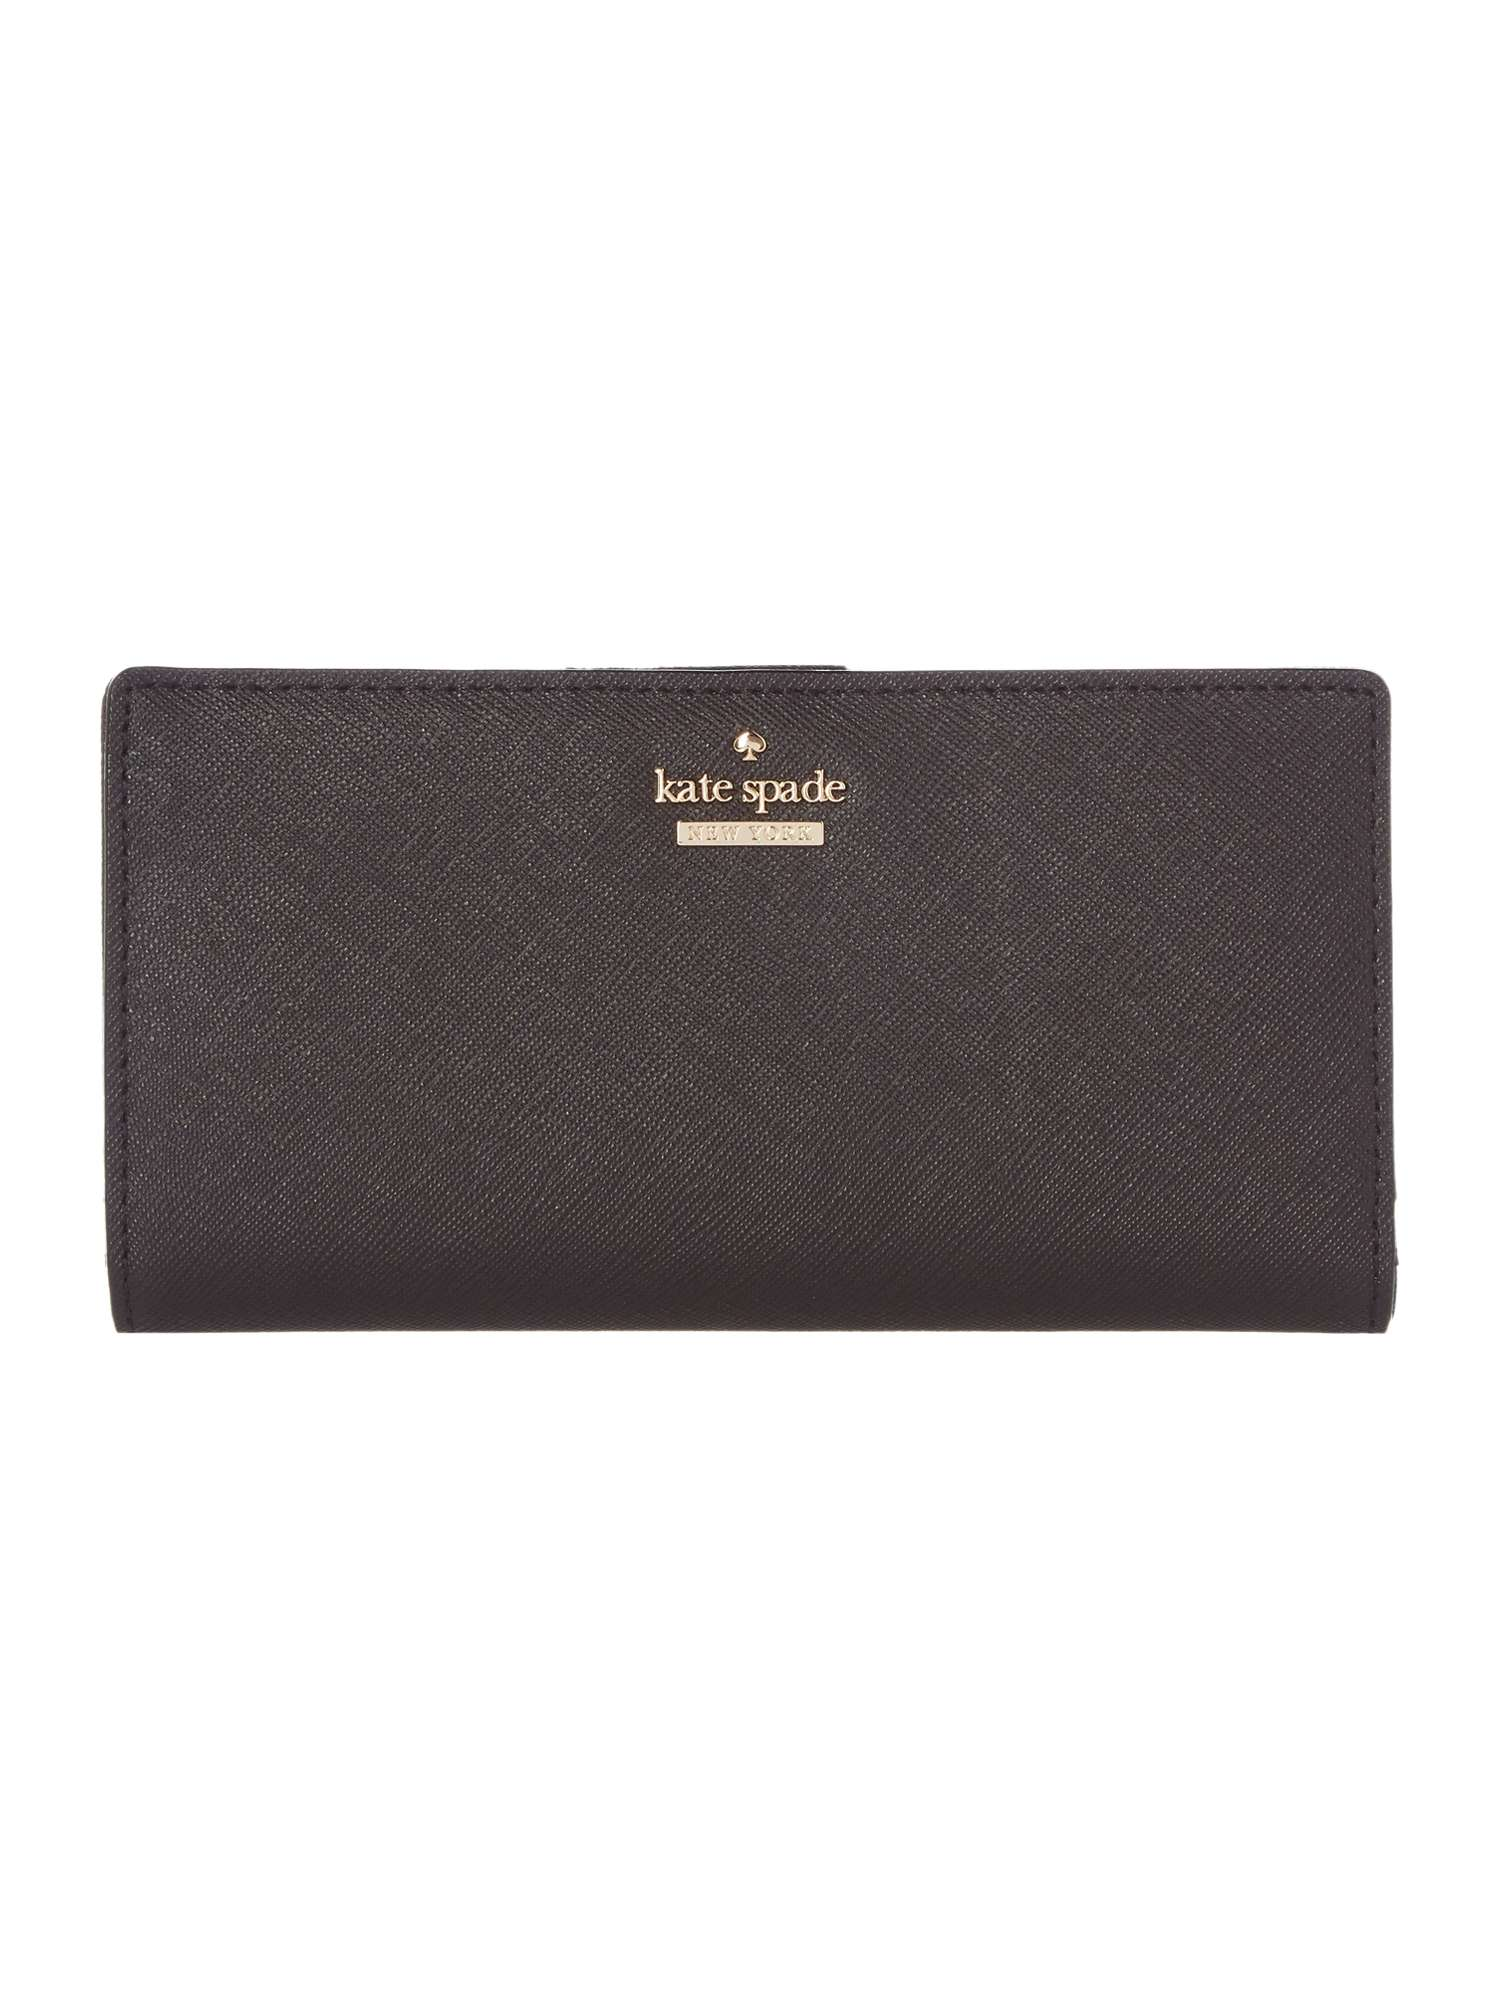 Kate Spade New York Purses & Wallets - House of Fraser